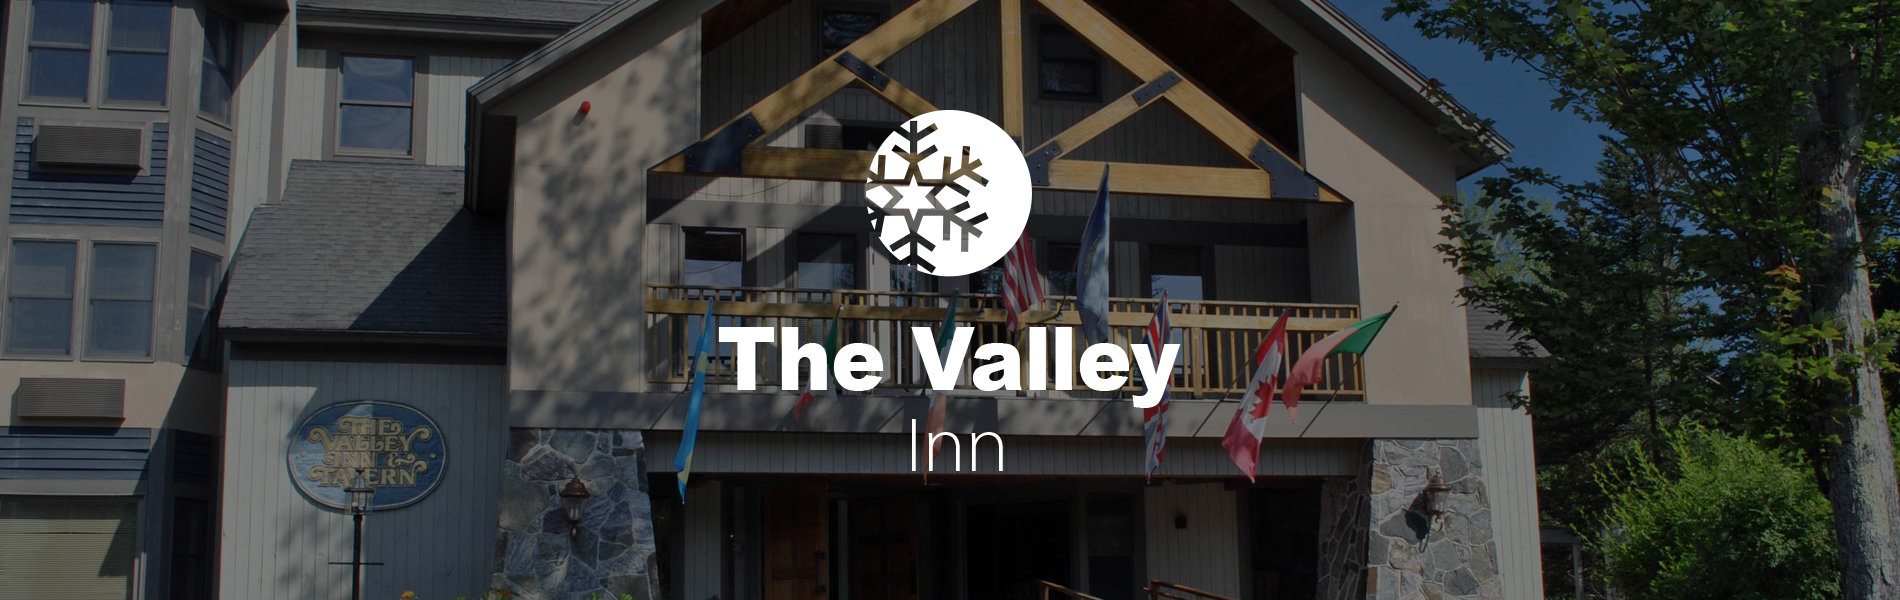 Relax at the Valley Inn and enjoy the beautiful White Mountains.